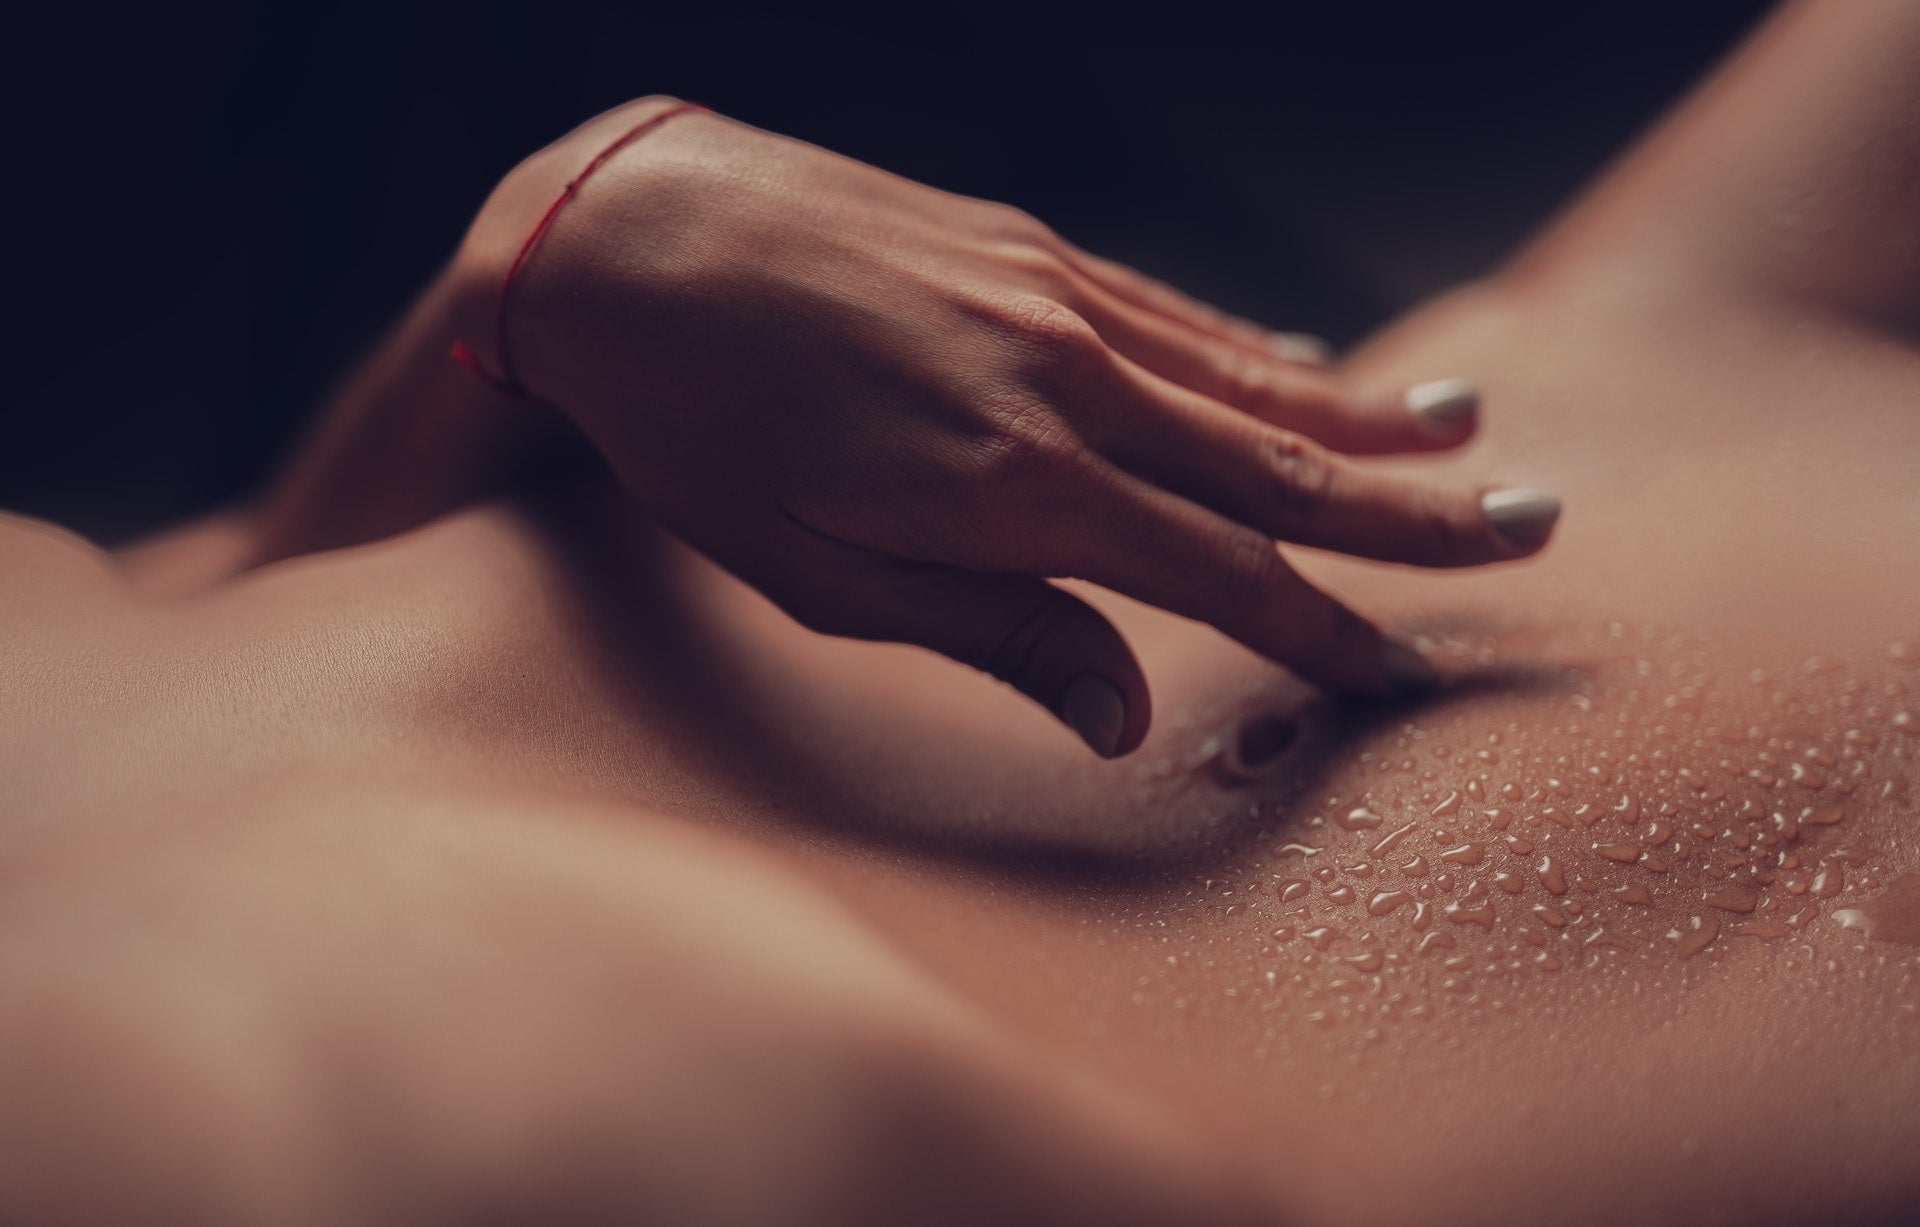 Crop naked woman touching her belly button